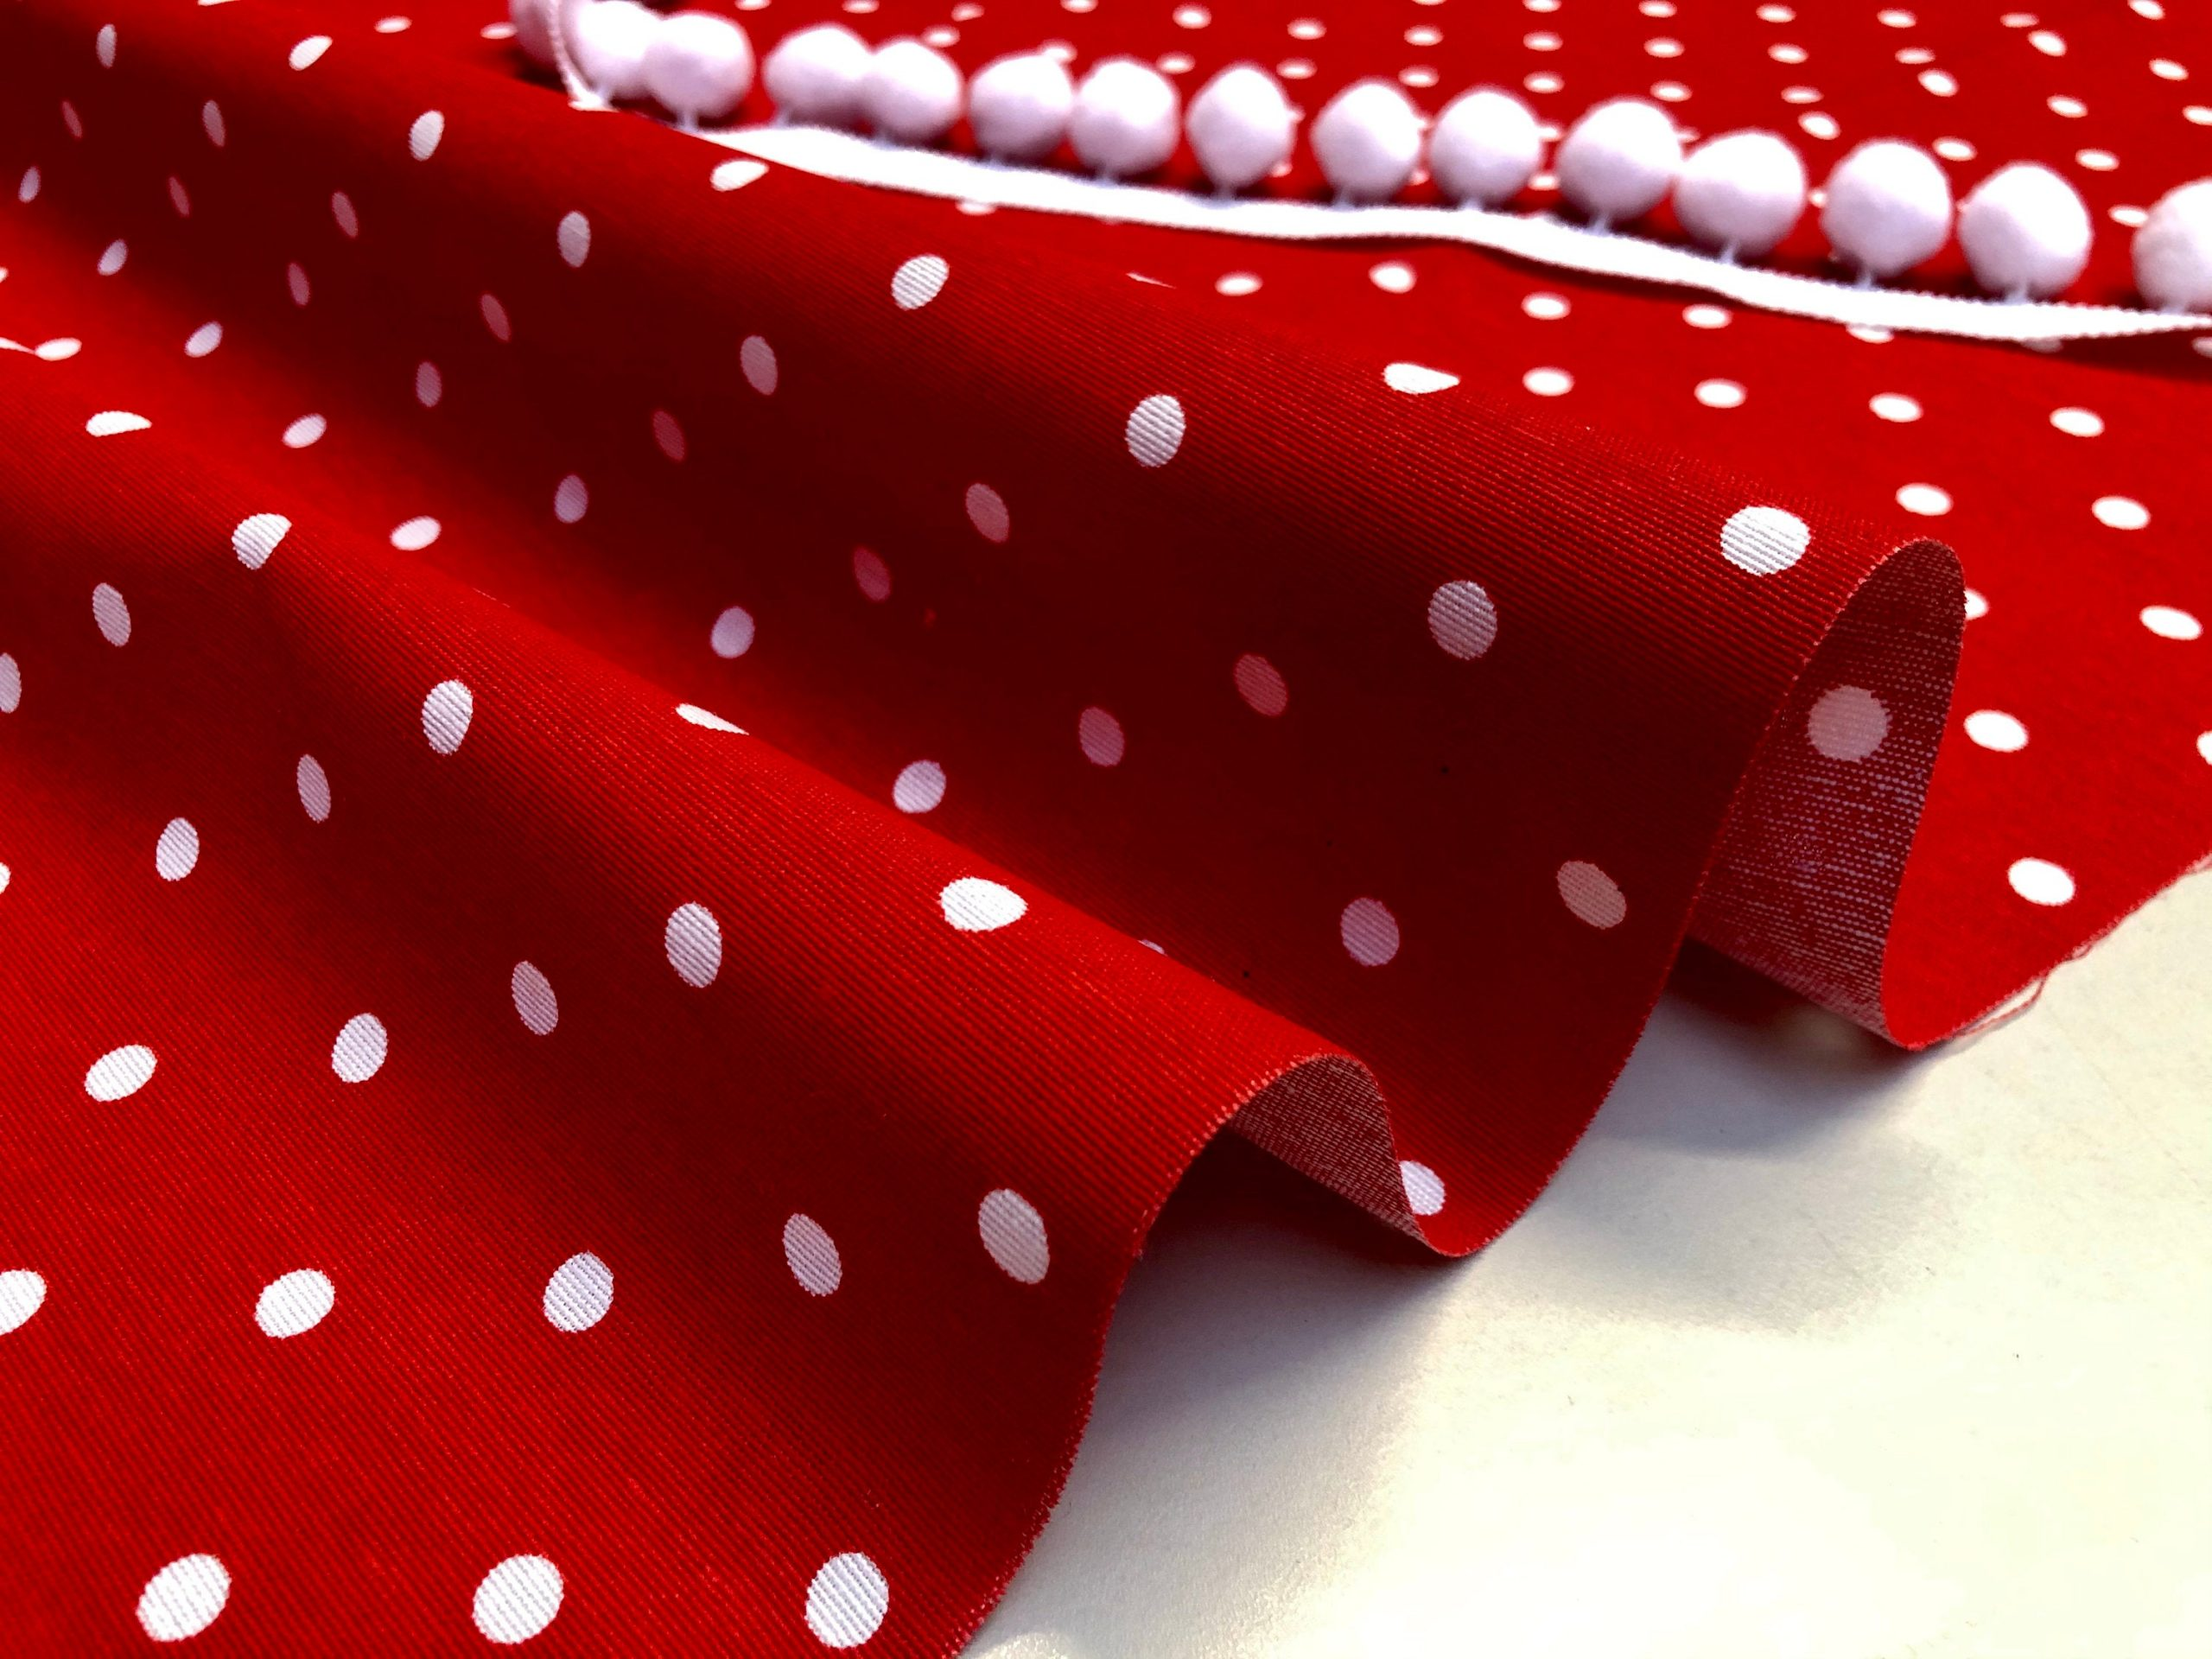 RED Polka Dot Fabric White Spots Dots PolyCotton Material Classic Chic Textile Home Decor Dress Curtains – 55''/140cm Wide Canvas